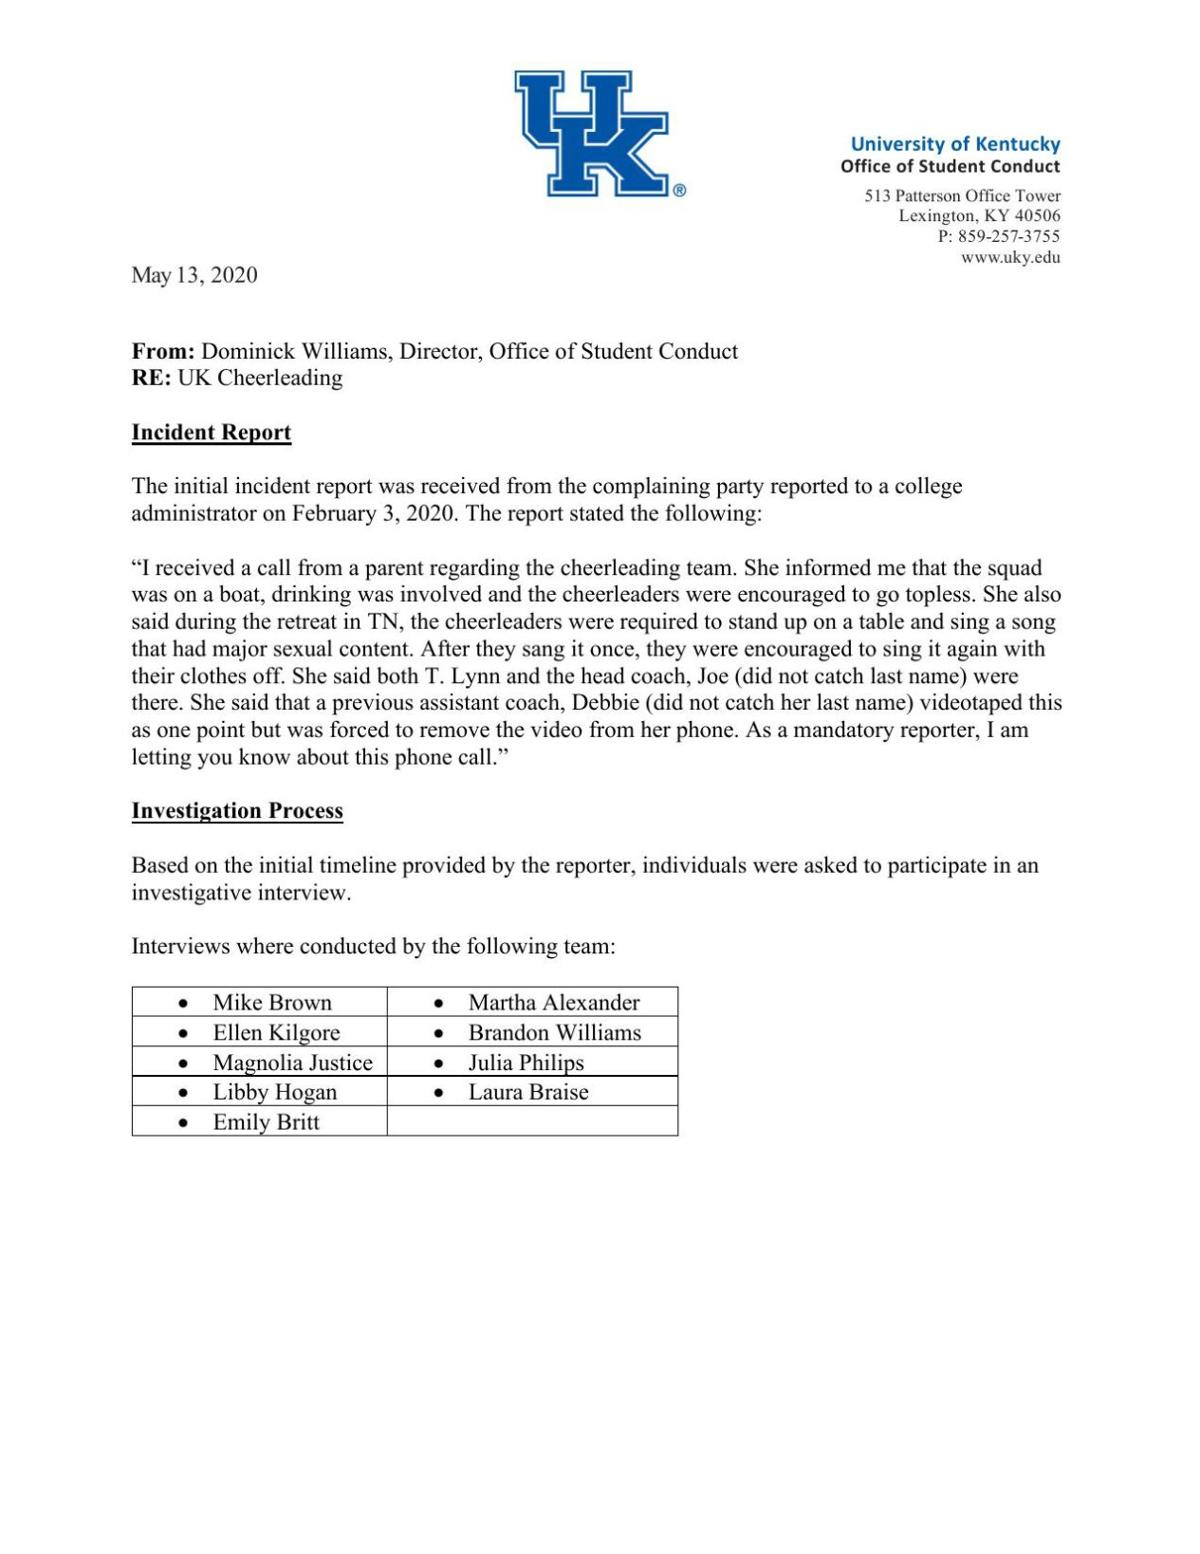 Annotated Student Conduct Report